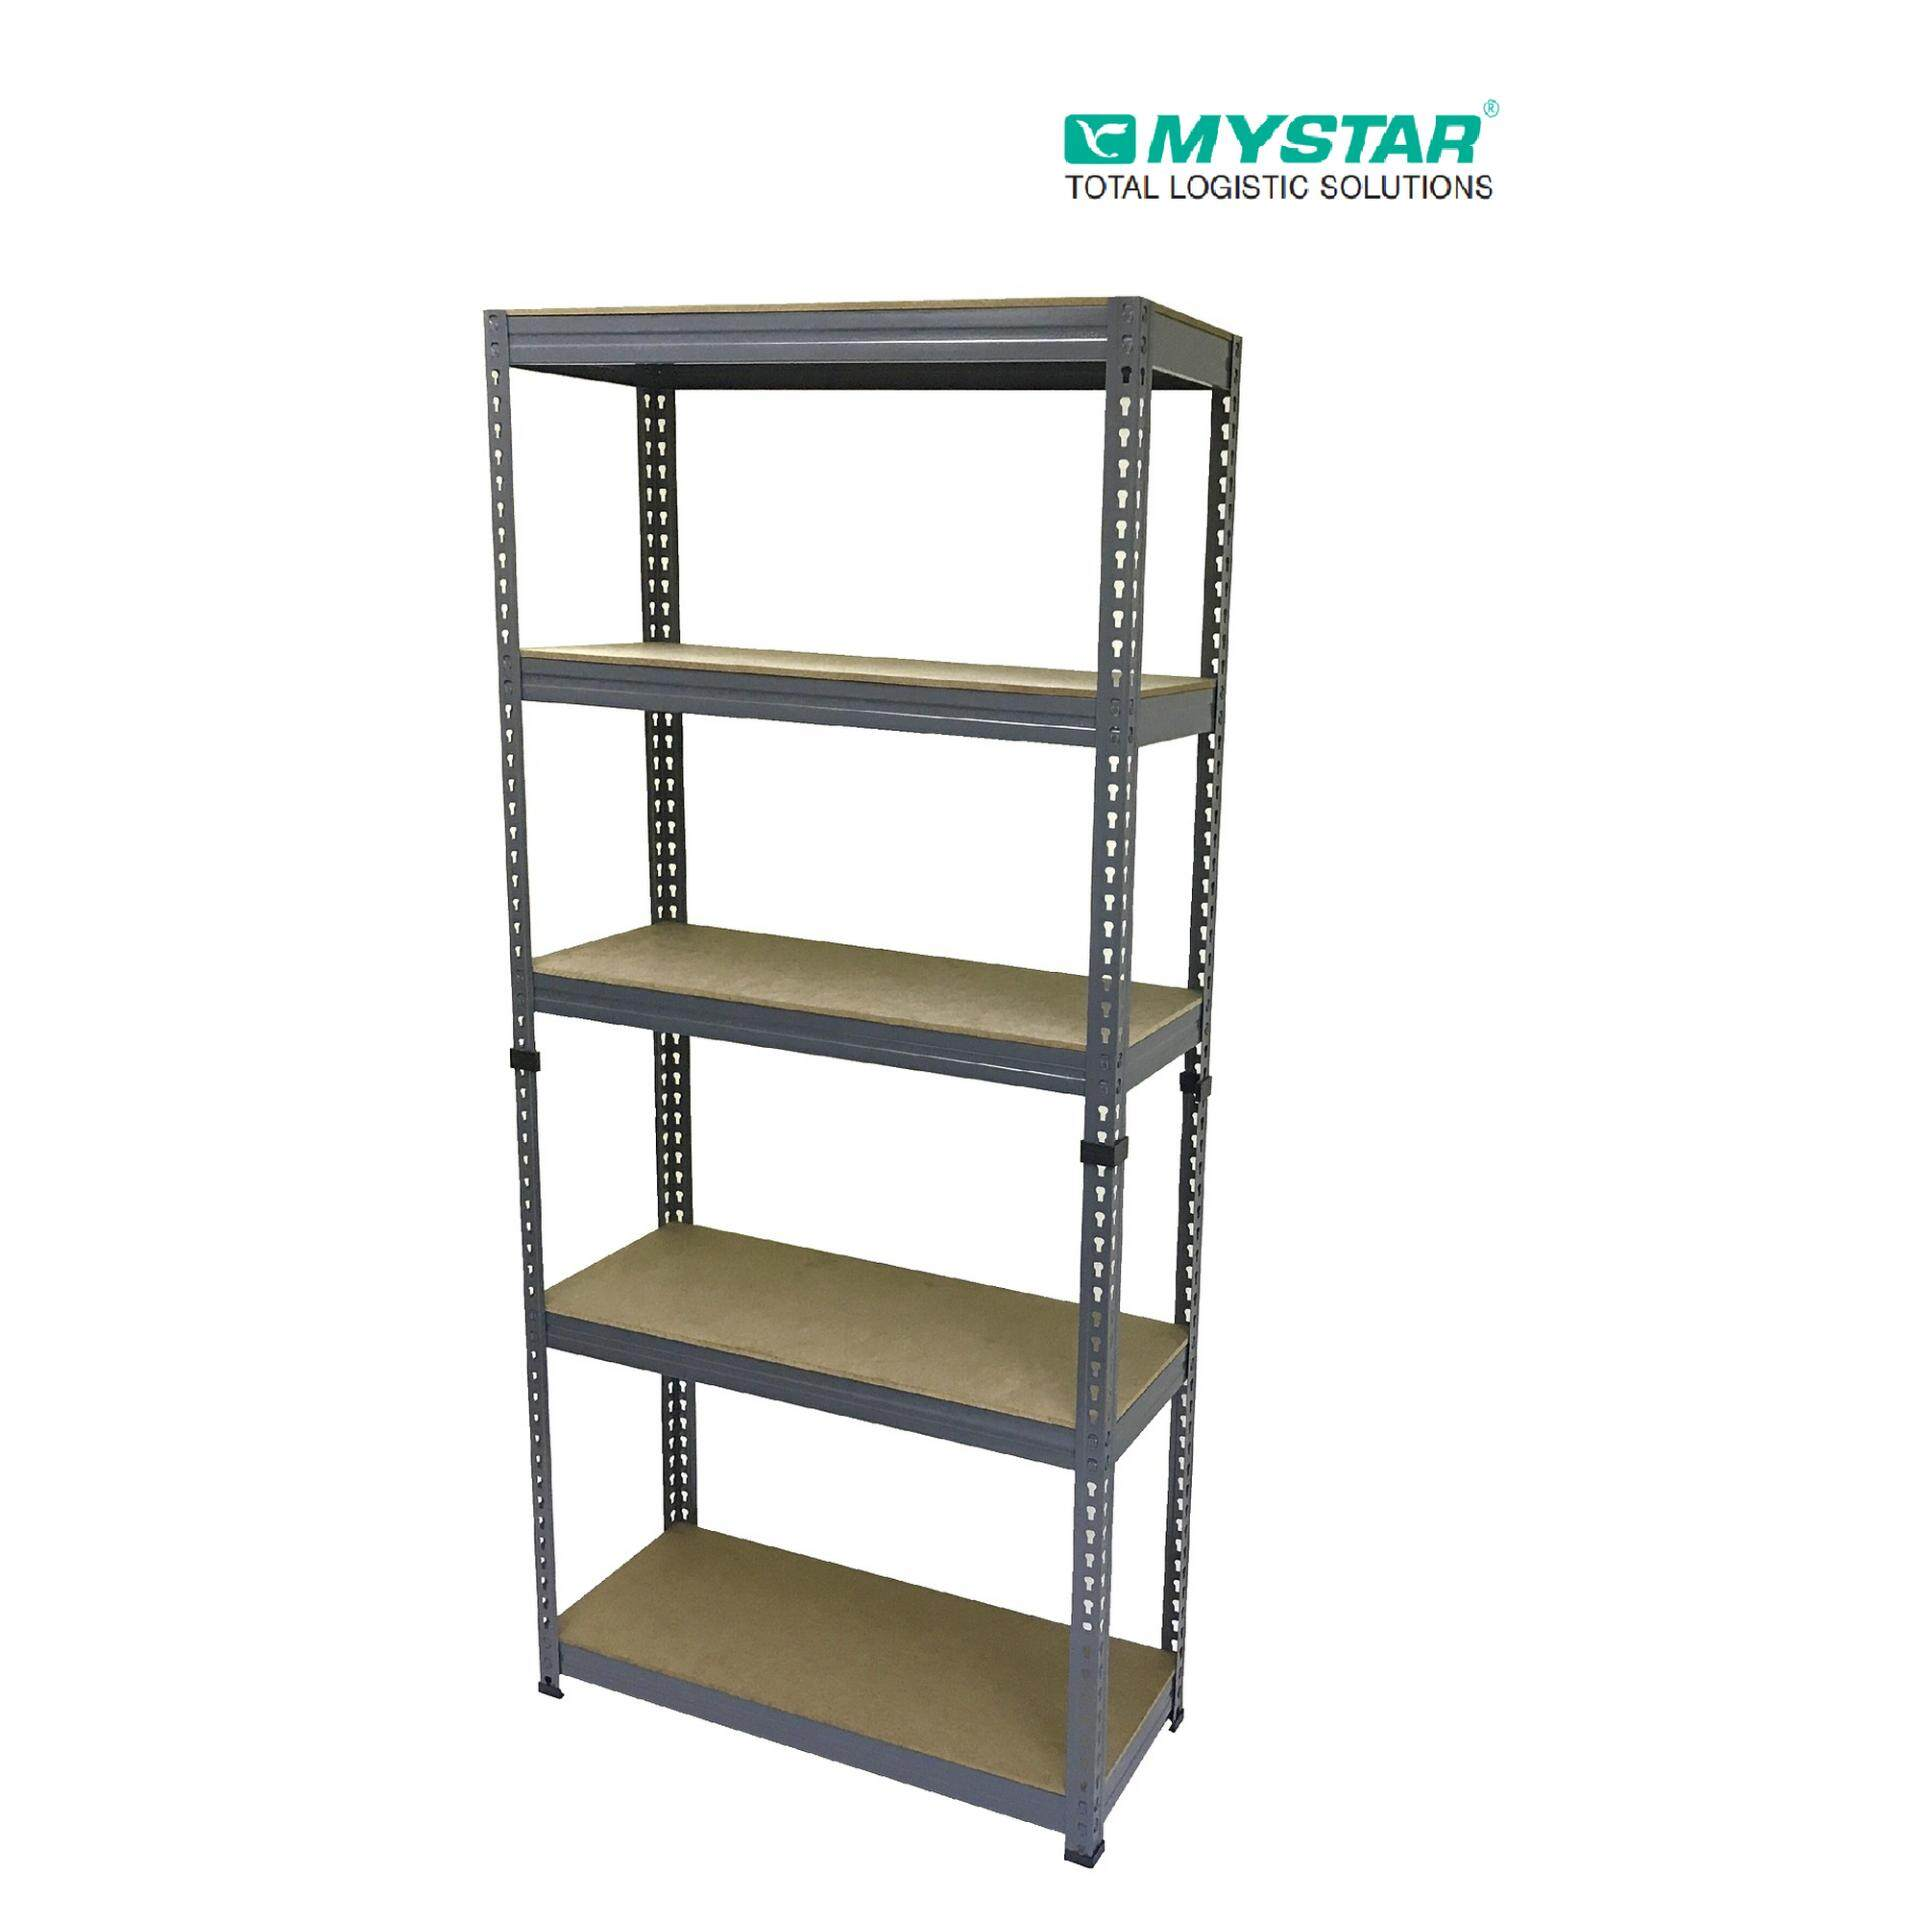 shelf storage gym assessories b steel en rack equipment weight levels capital black sports traytor